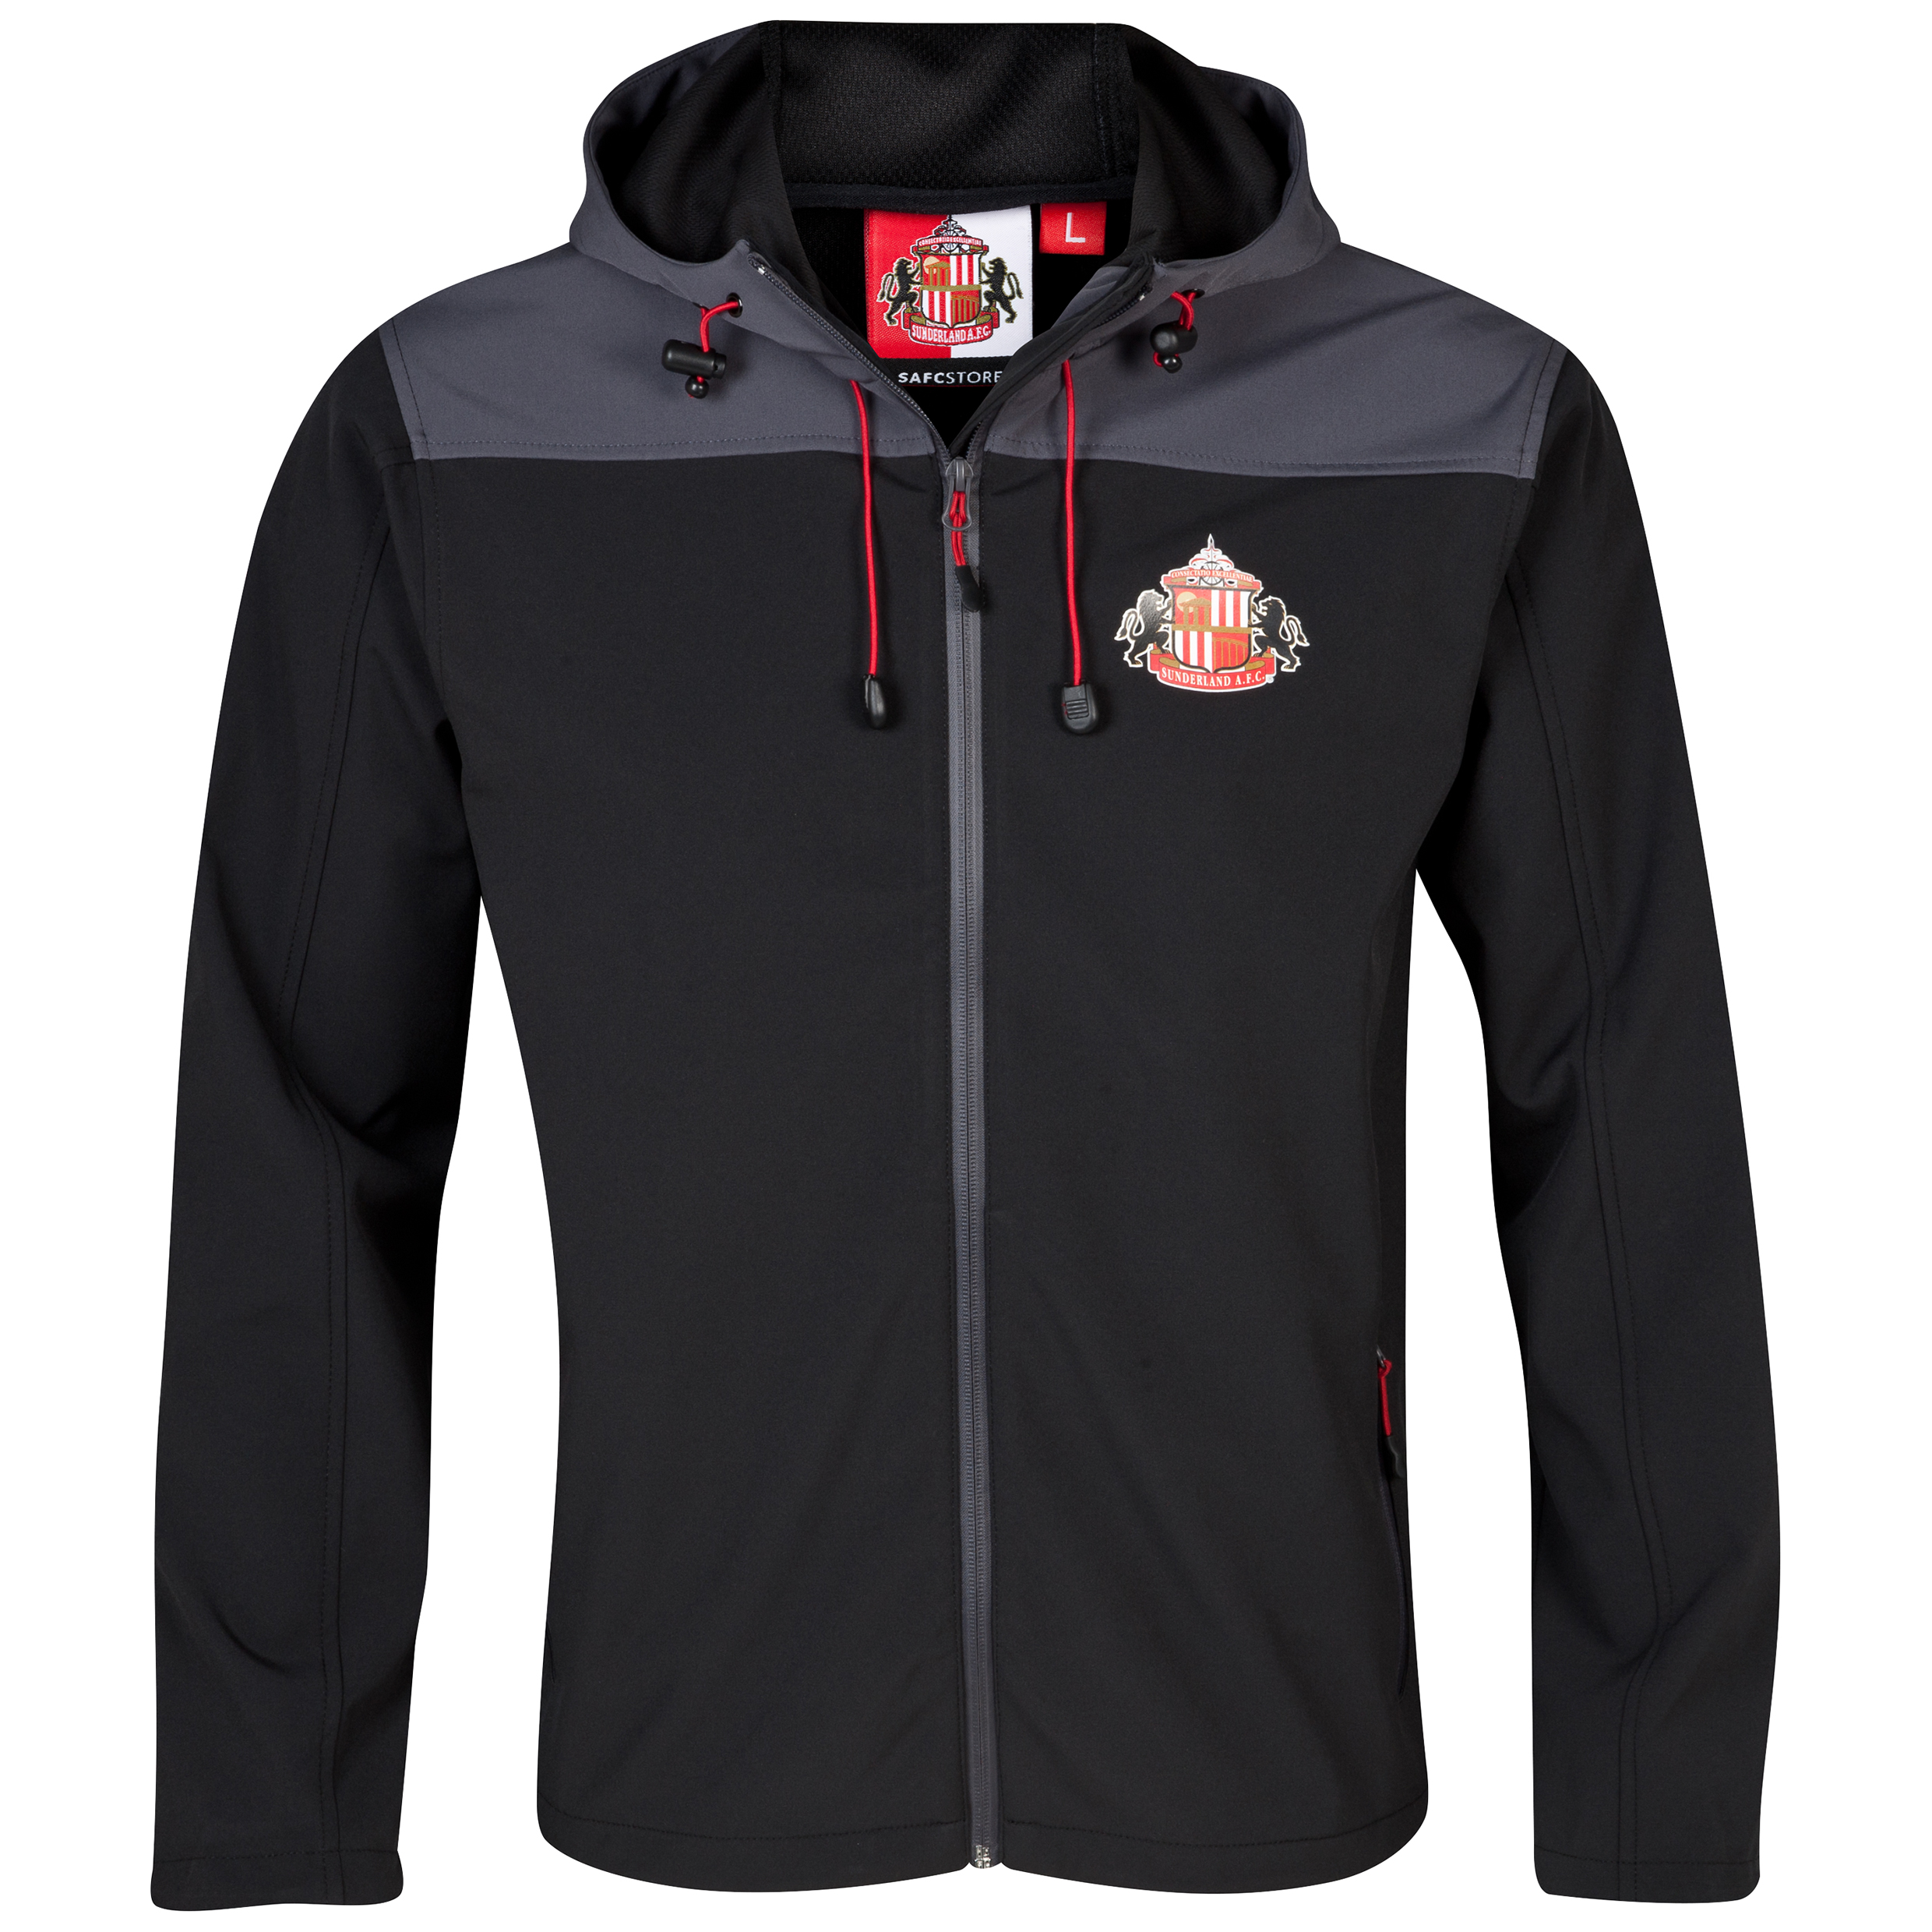 Sunderland Performance Rocus Jacket - Mens Black